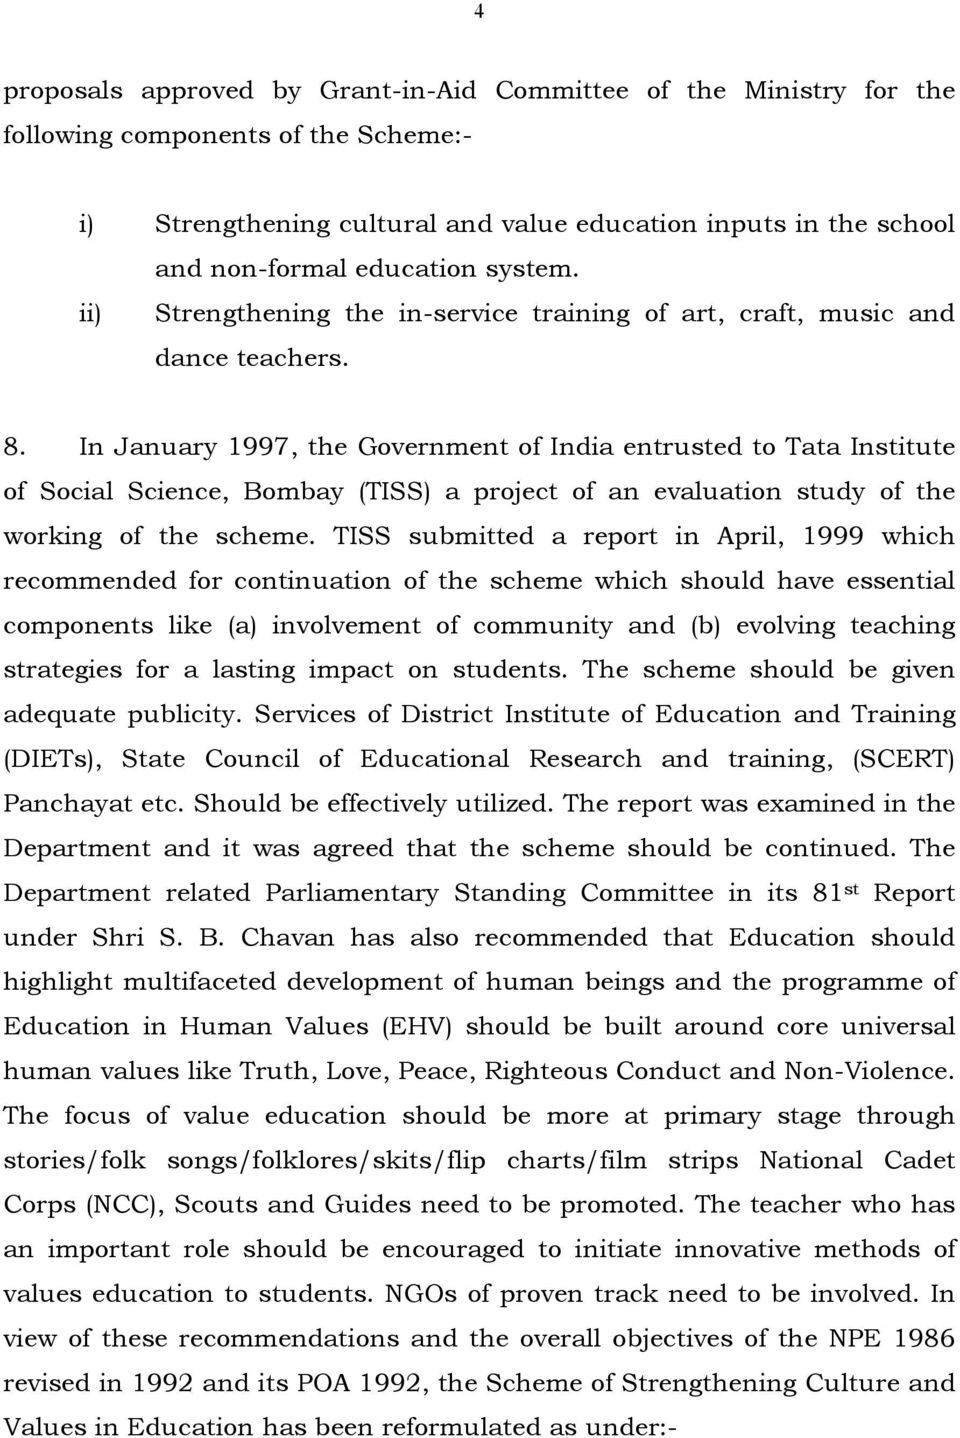 In January 1997, the Government of India entrusted to Tata Institute of Social Science, Bombay (TISS) a project of an evaluation study of the working of the scheme.